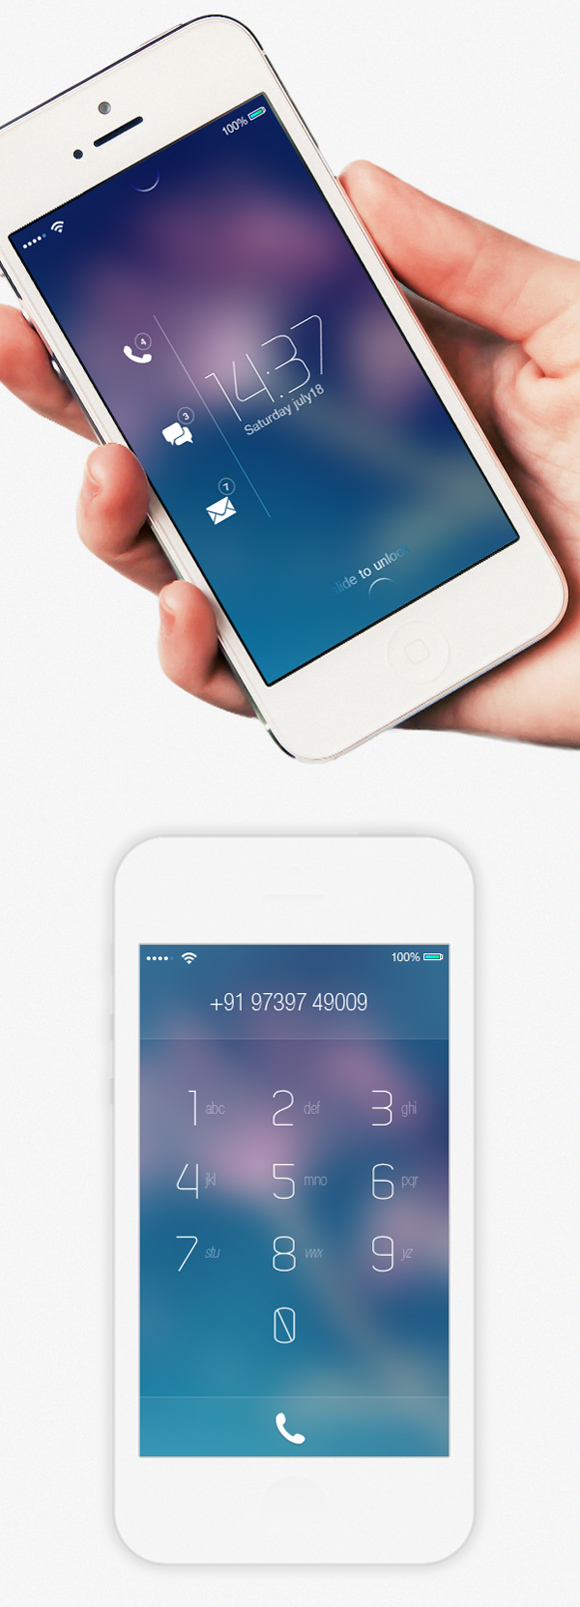 15 iOS 8 Design Concepts for Your Inspiration